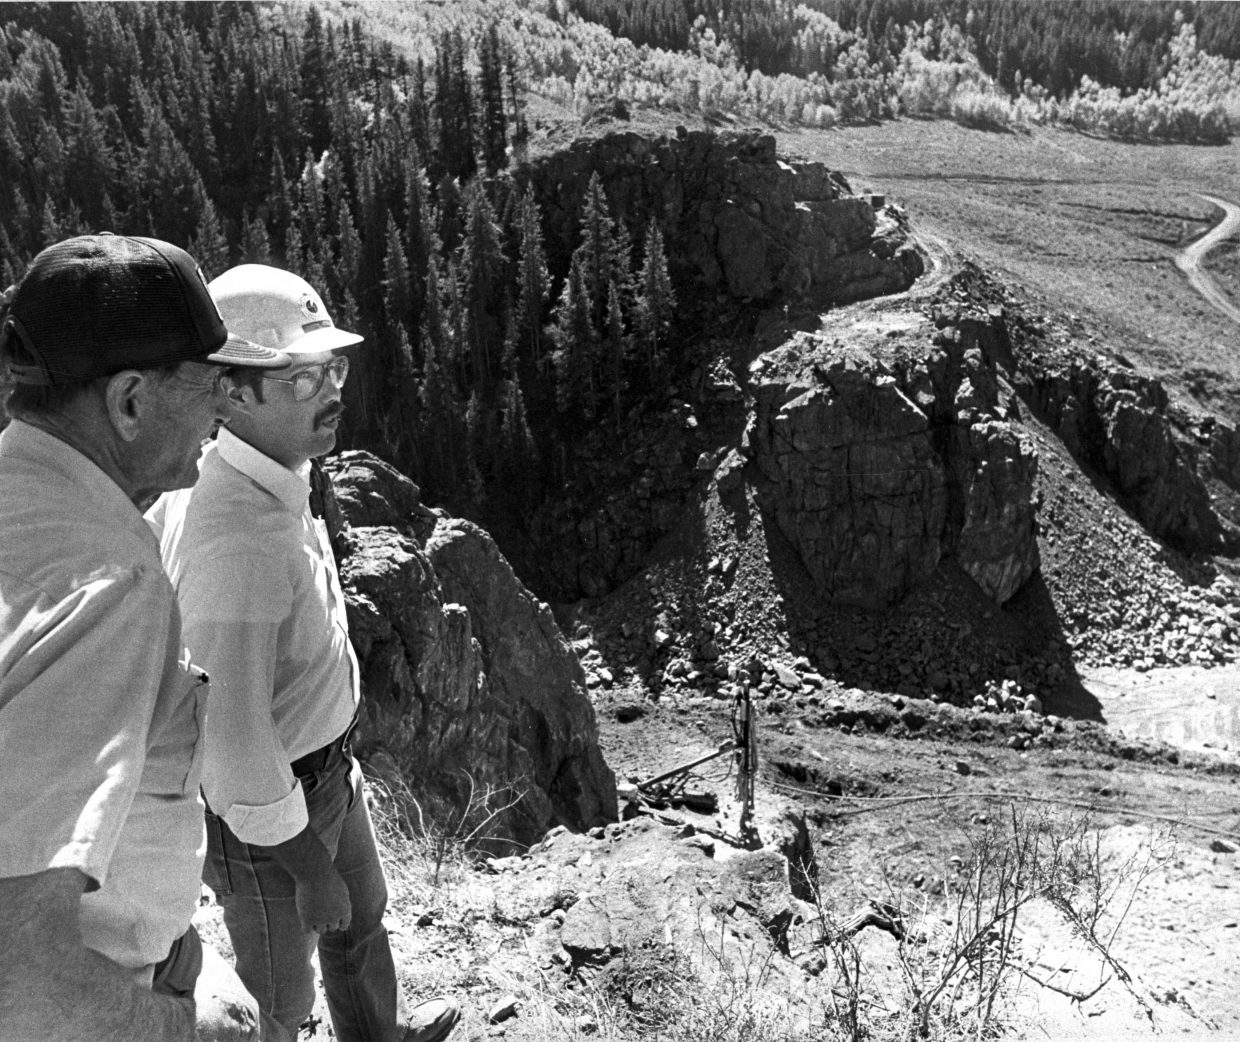 Construction of Stagecoach dam in September 1987.